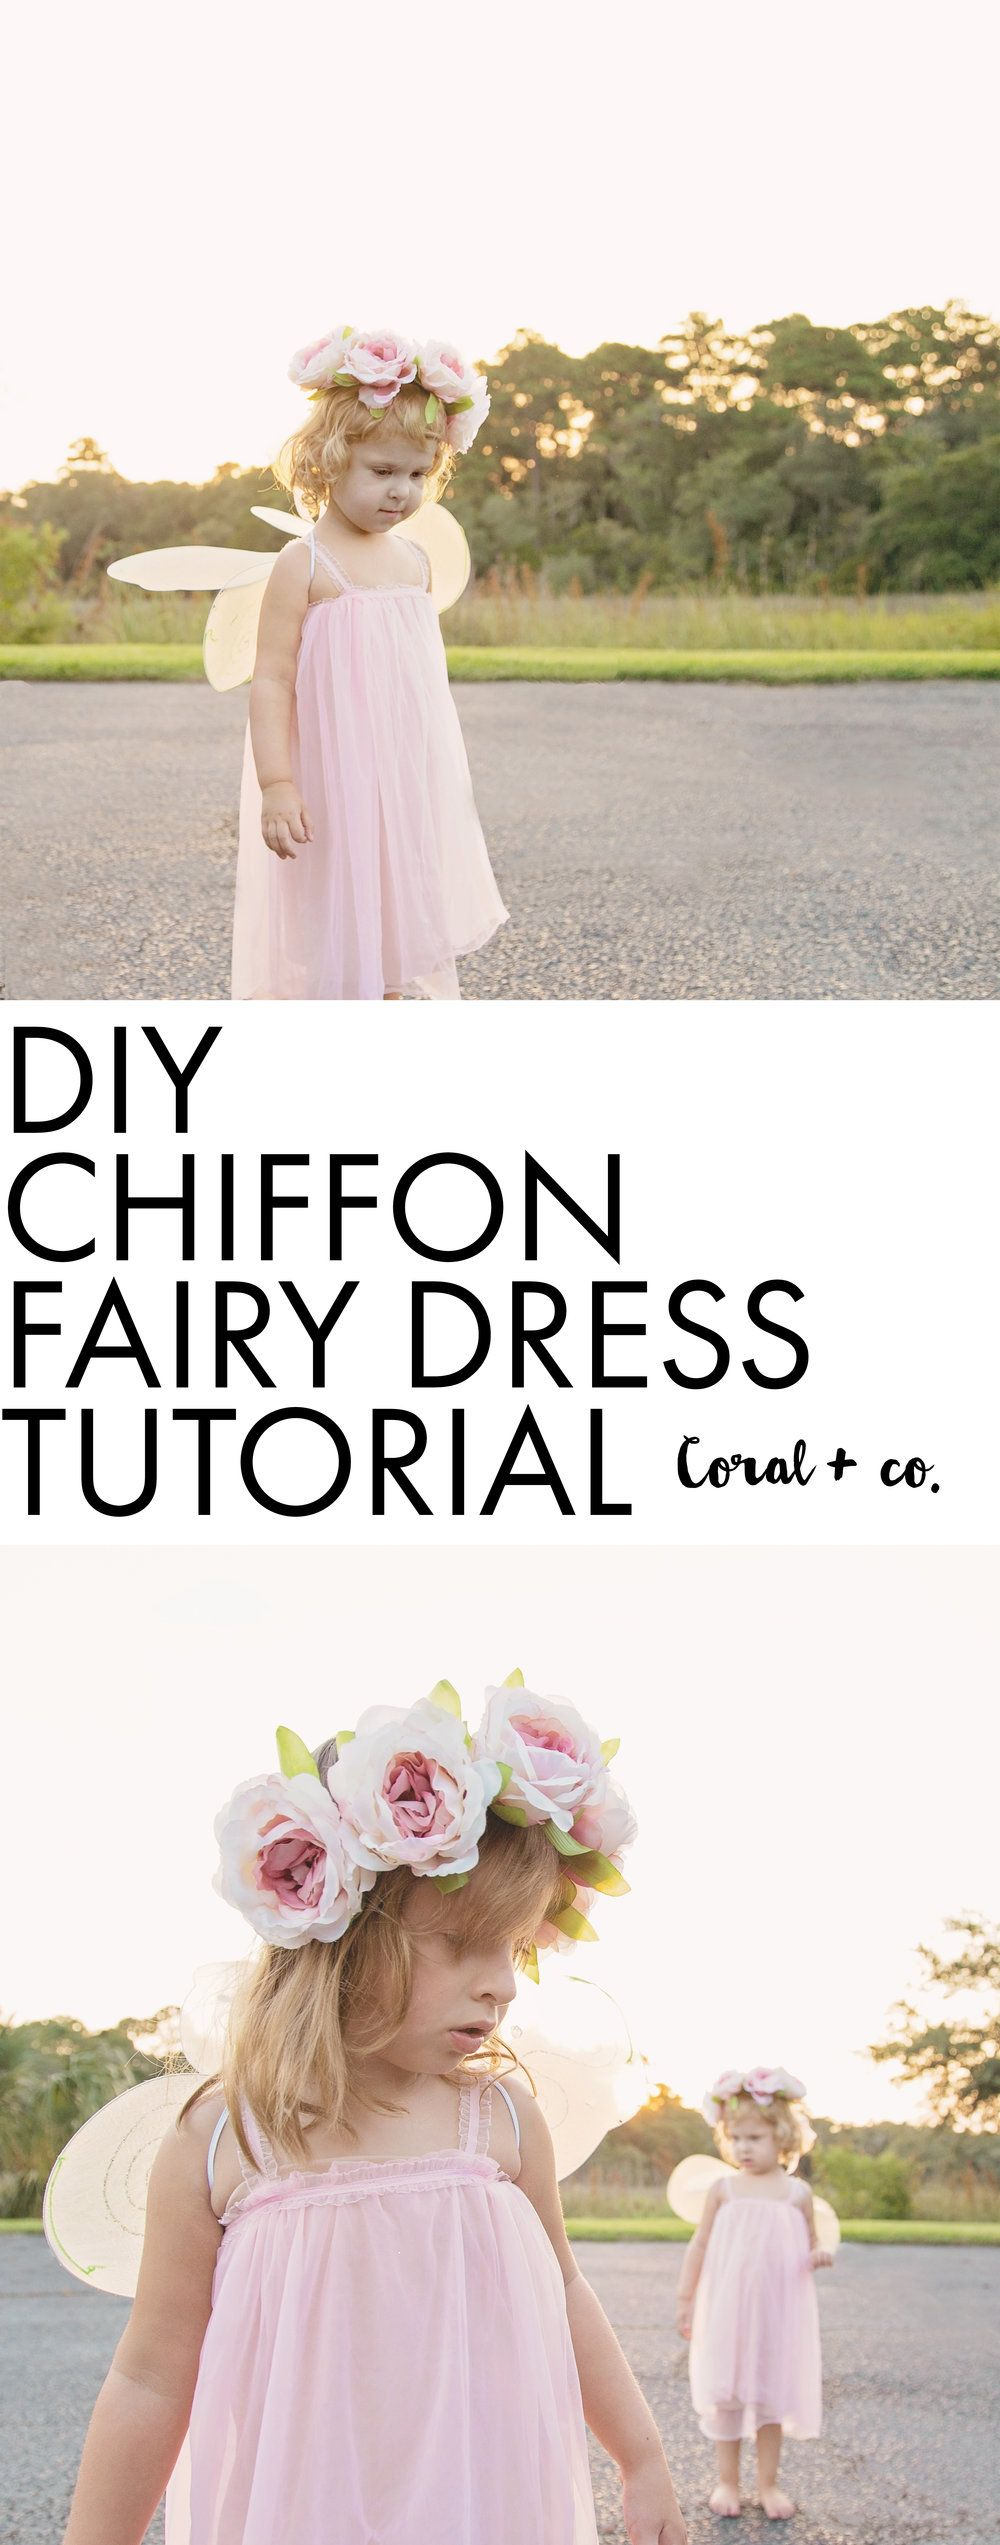 DIY Fairy Costume Tutorial with Flowy Chiffon | Tutoriales de ...